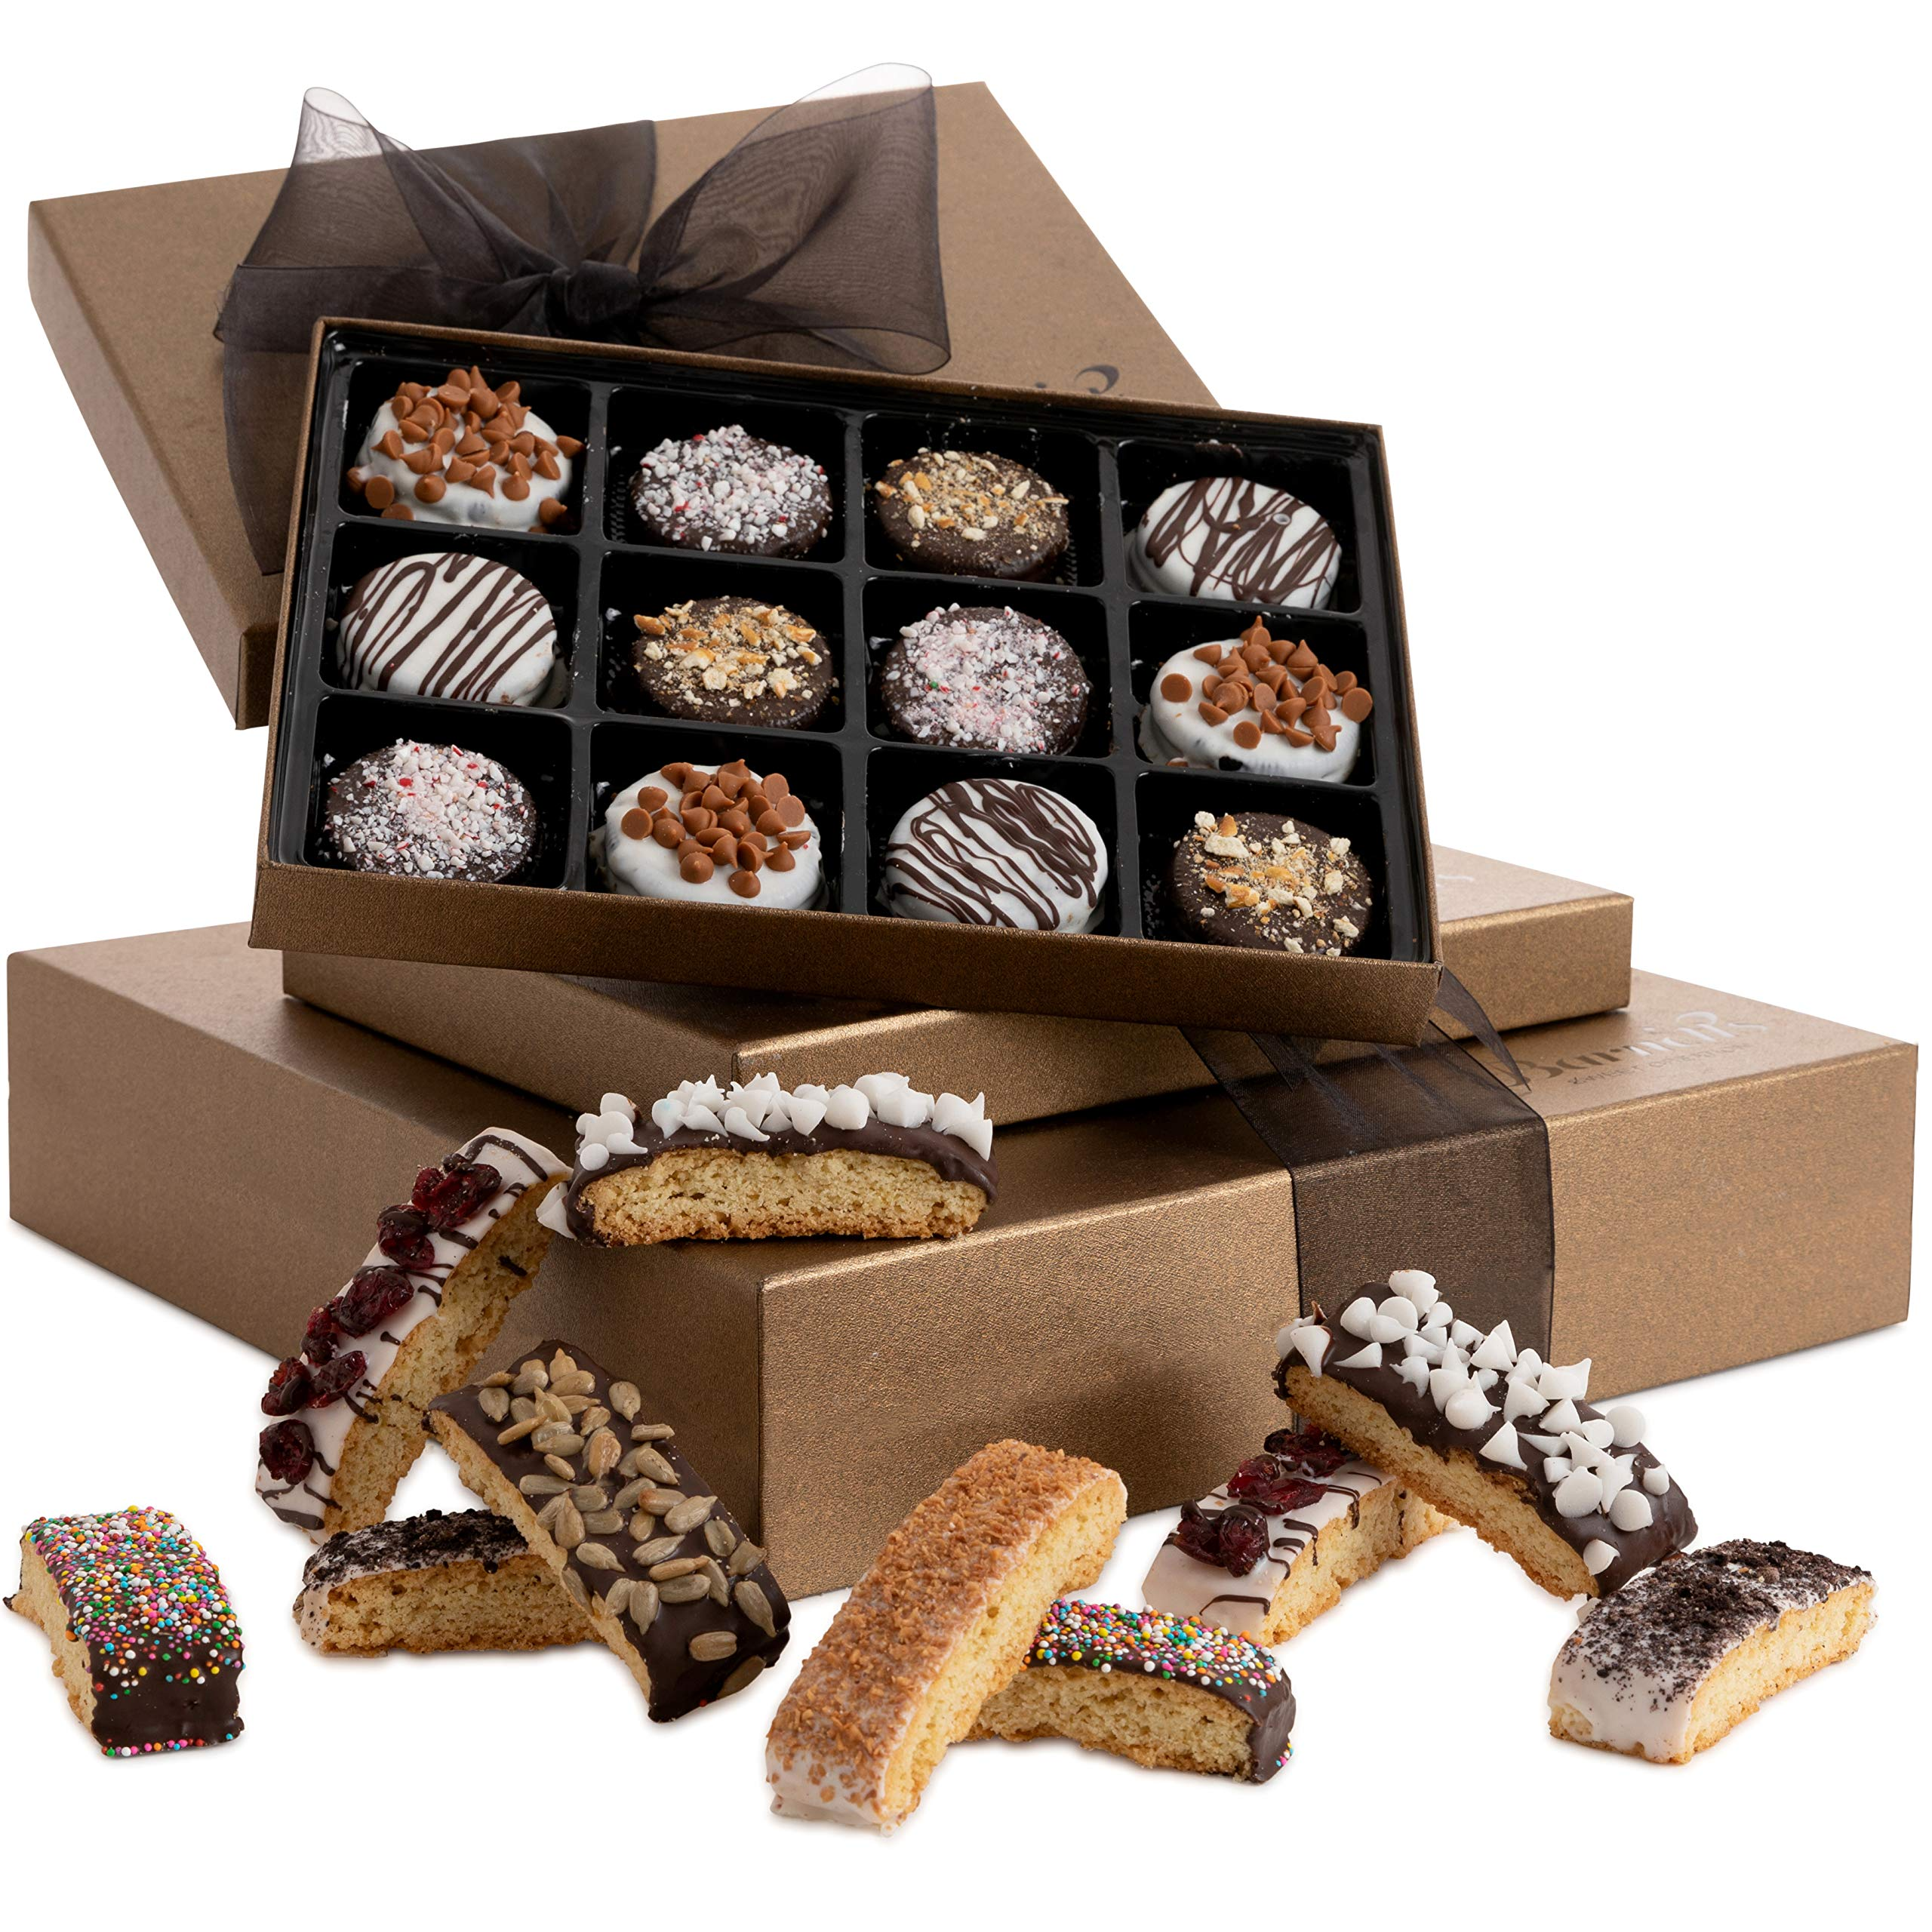 Barnett's Chocolate Cookies & Biscotti Gift Basket Tower, Unique Holiday Gourmet Cookie Gifts, Christmas Food Idea For Him Her Corporate Men Women Families Thanksgiving Valentines Fathers Mothers Day by Barnett's Fine Biscotti